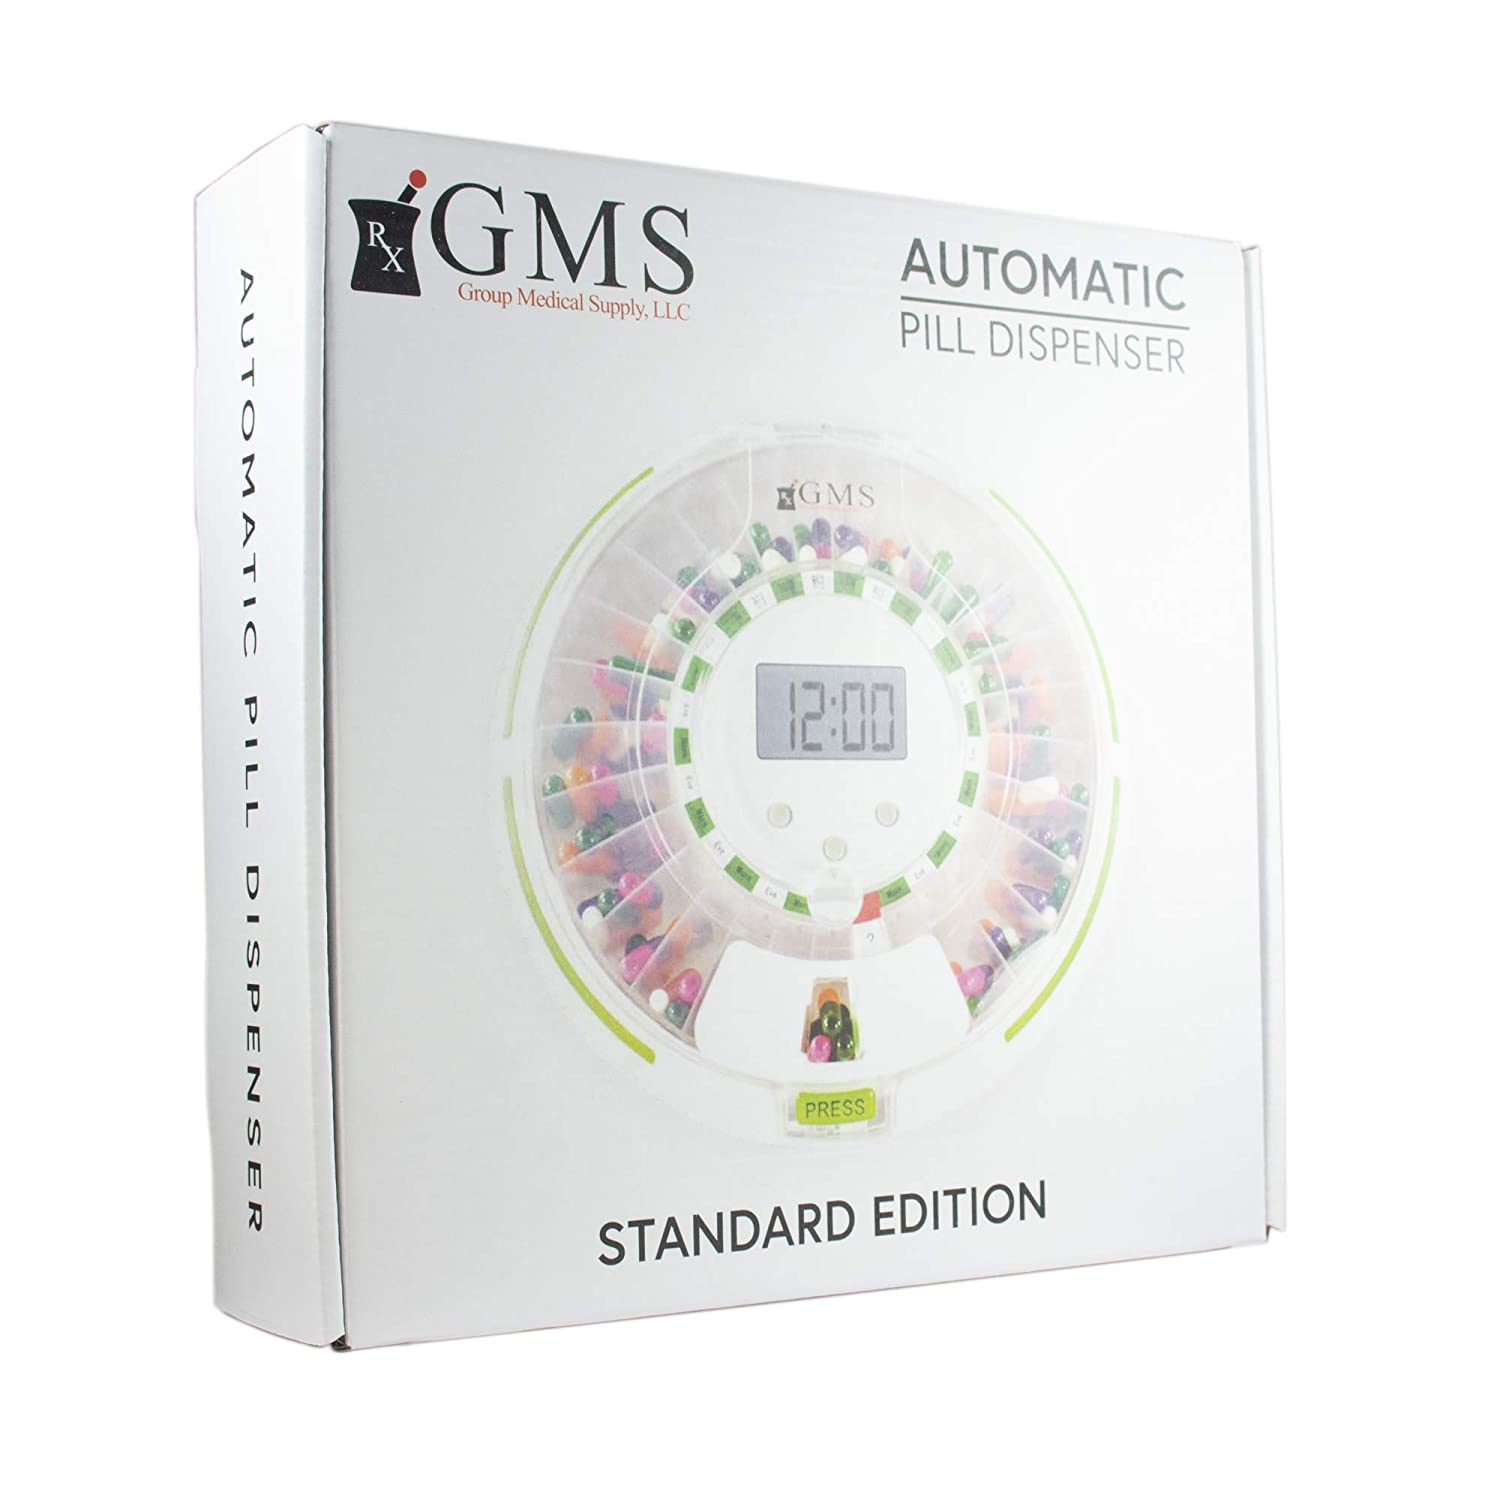 GMS Automatic Pill Dispenser 28 Day Automatic Pill Dispenser with Clear and Solid Lids (GMS Automatic Pill Dispenser, Tray, 6 Dosage Rings, Key) 1 ...